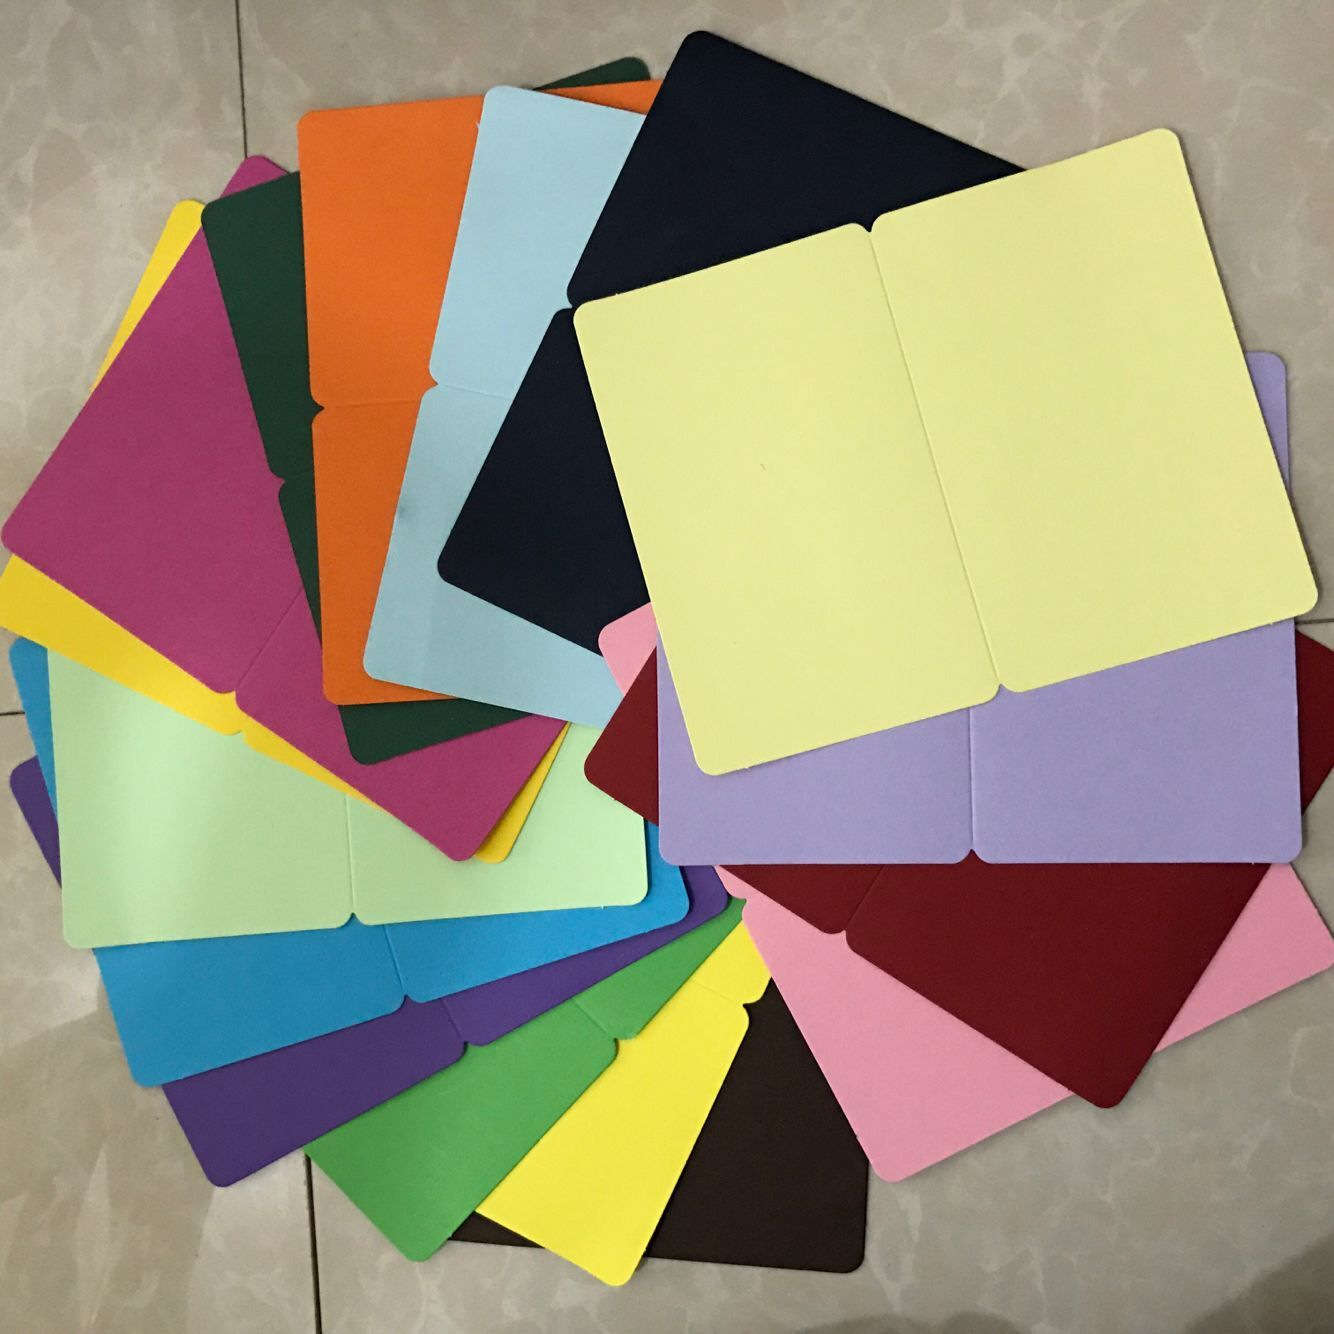 (10 Pieces/lot) DIY Blank Cards Hand Drawing Doodle Paper Cards Happy Birthday Card Greeting Cards 15x9.3cm